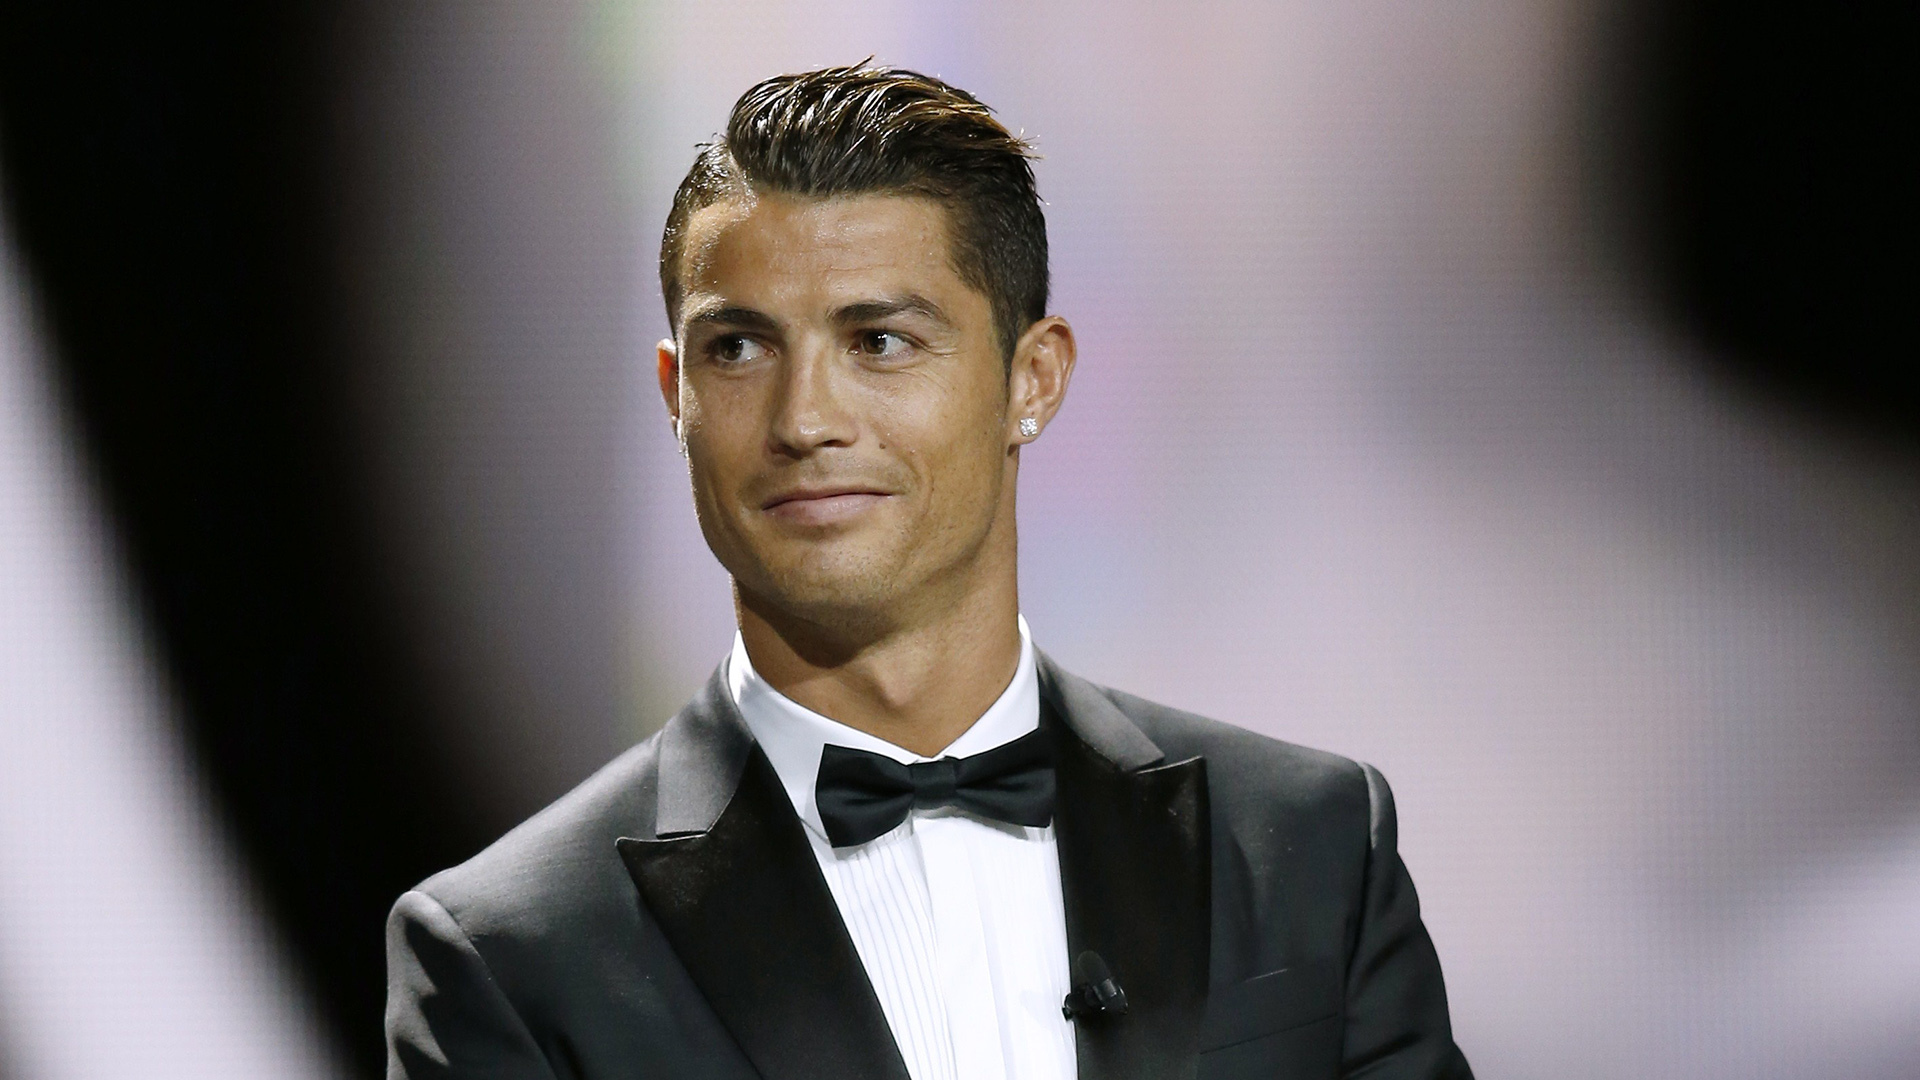 cristiano ronaldo hd free football function mobile desktop download wallpapers pics